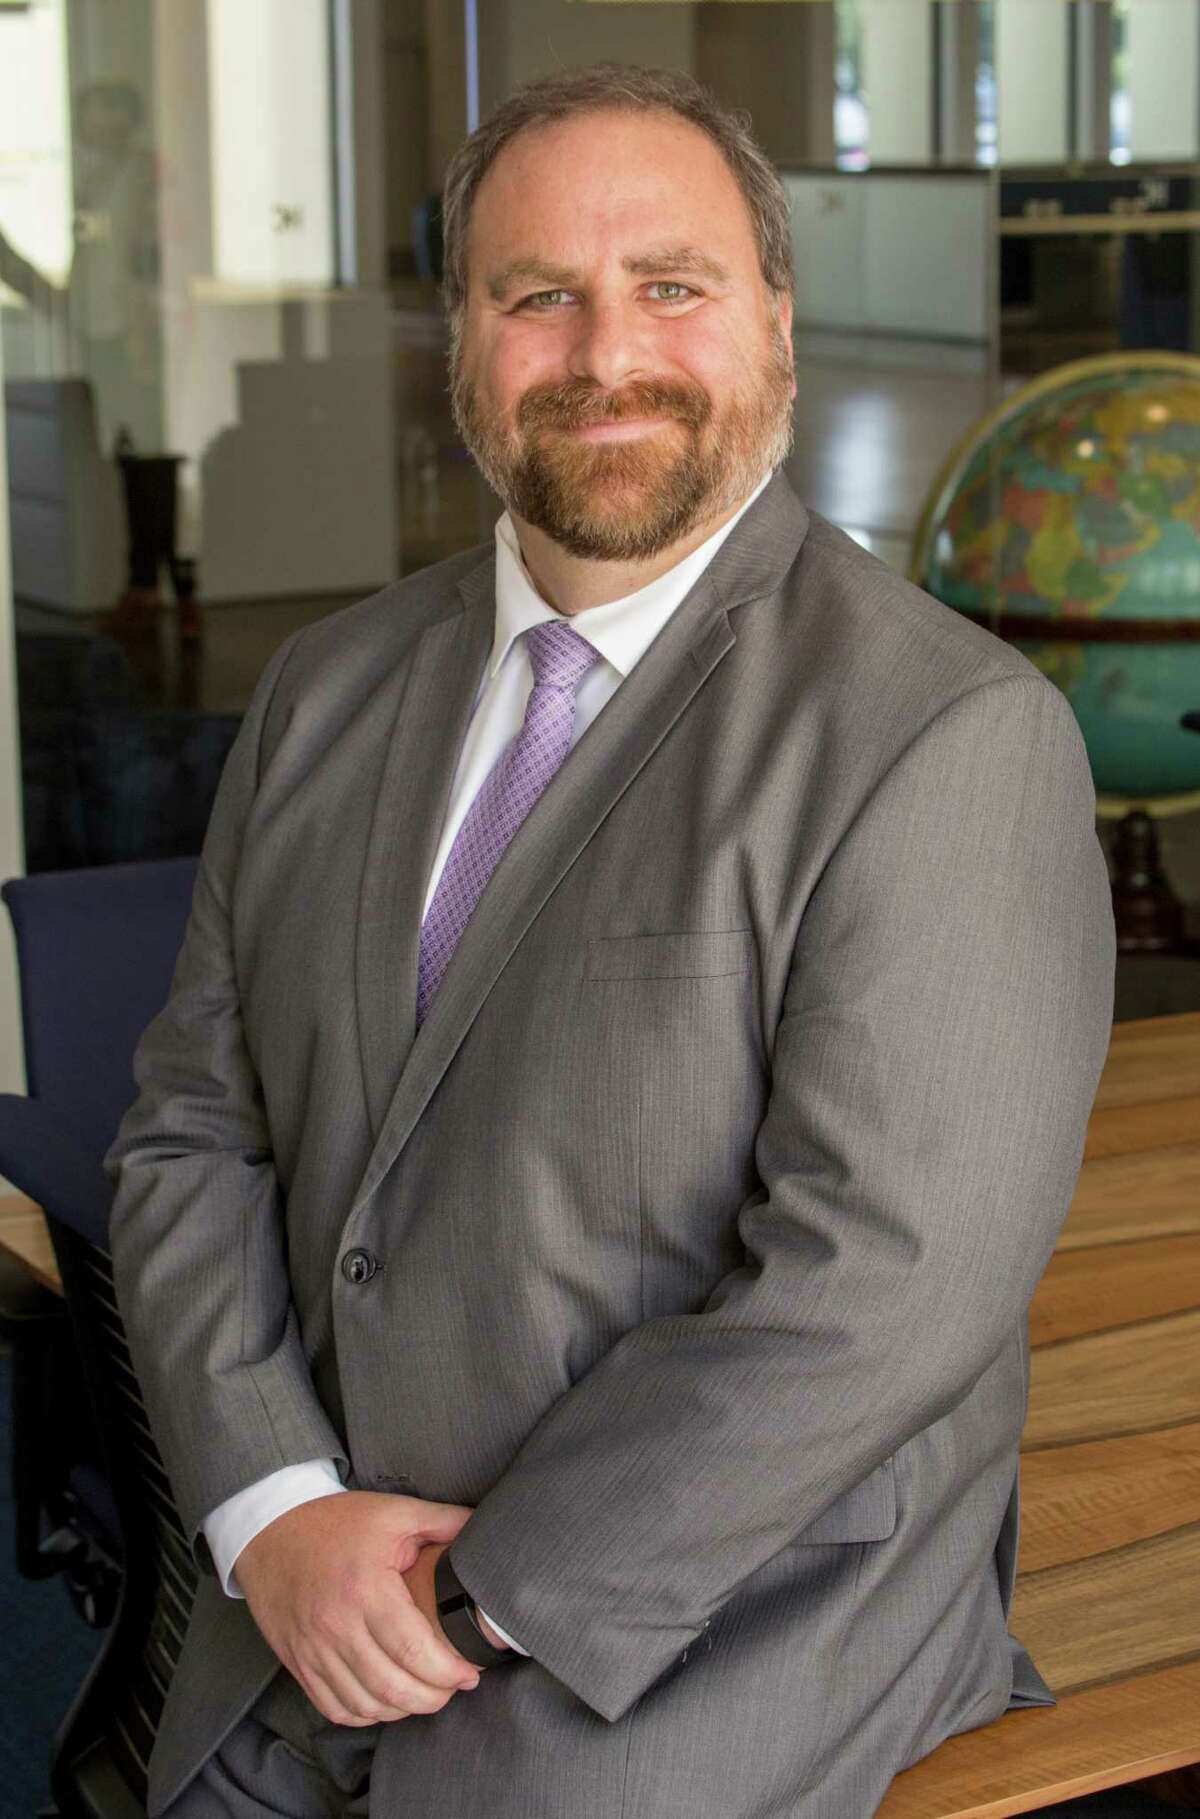 Mike Engelhart is a candidate for re-election to the 151st Civil District Court (JeremyCarter/ Houston Chronicle)